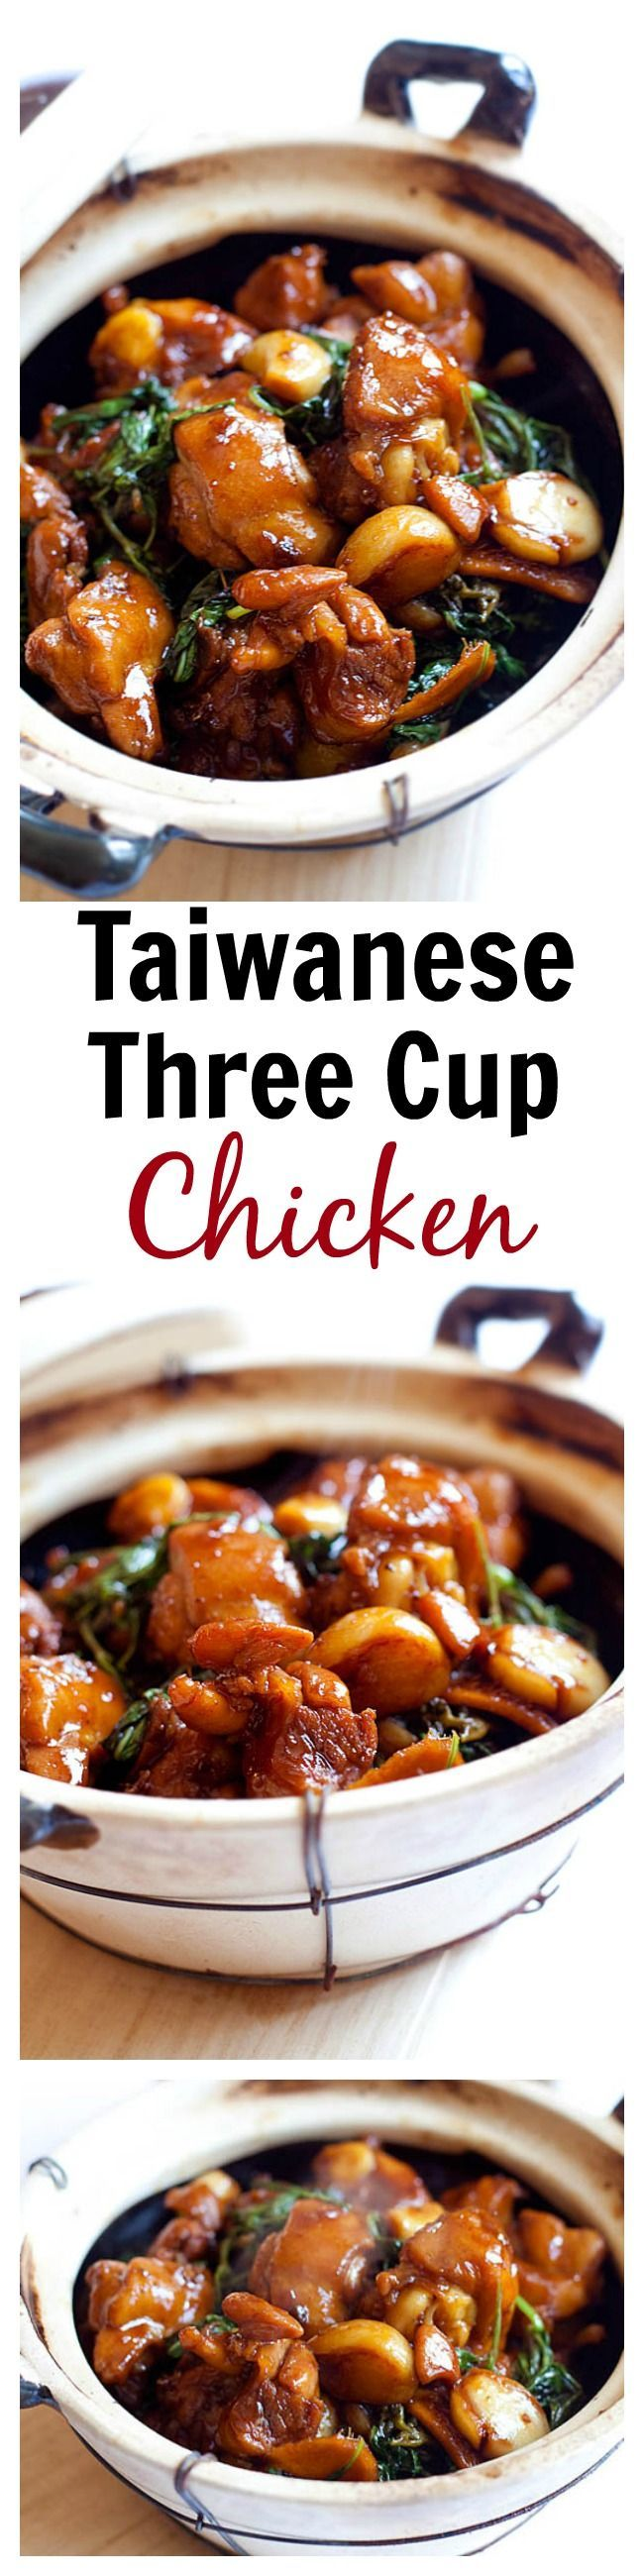 Taiwanese 3-cup chicken - delicious comfort food made with ginger, garlic, chicken and soy sauce, with basil leaves | rasamalaysia.com